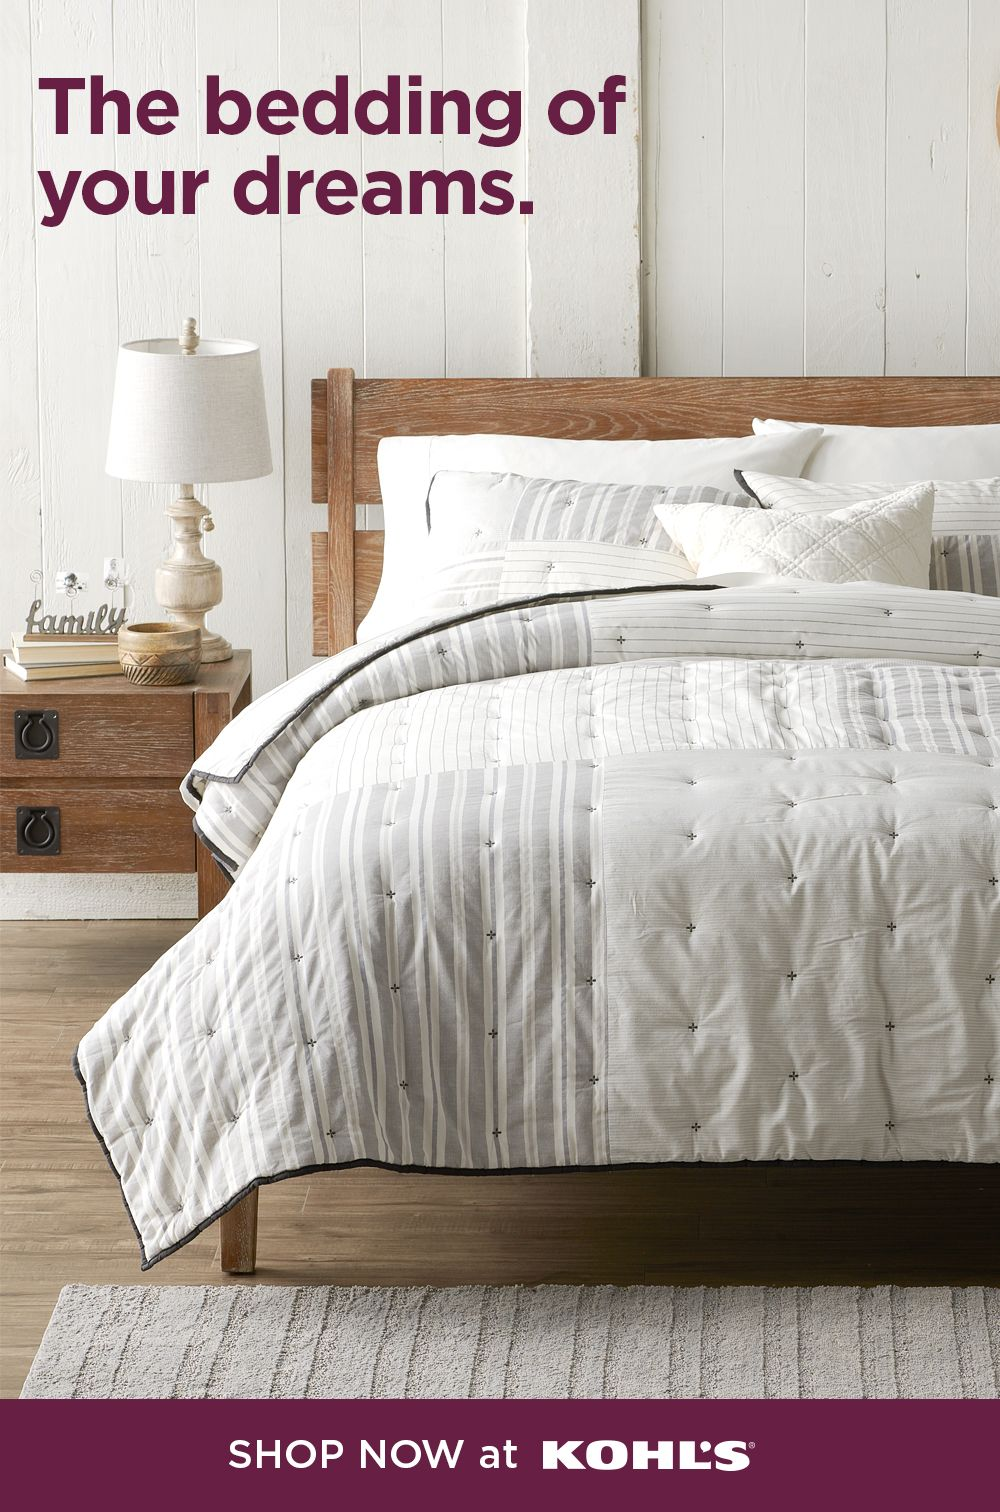 Find New Bedding At Kohl S The Secret To Getting A Great Night S